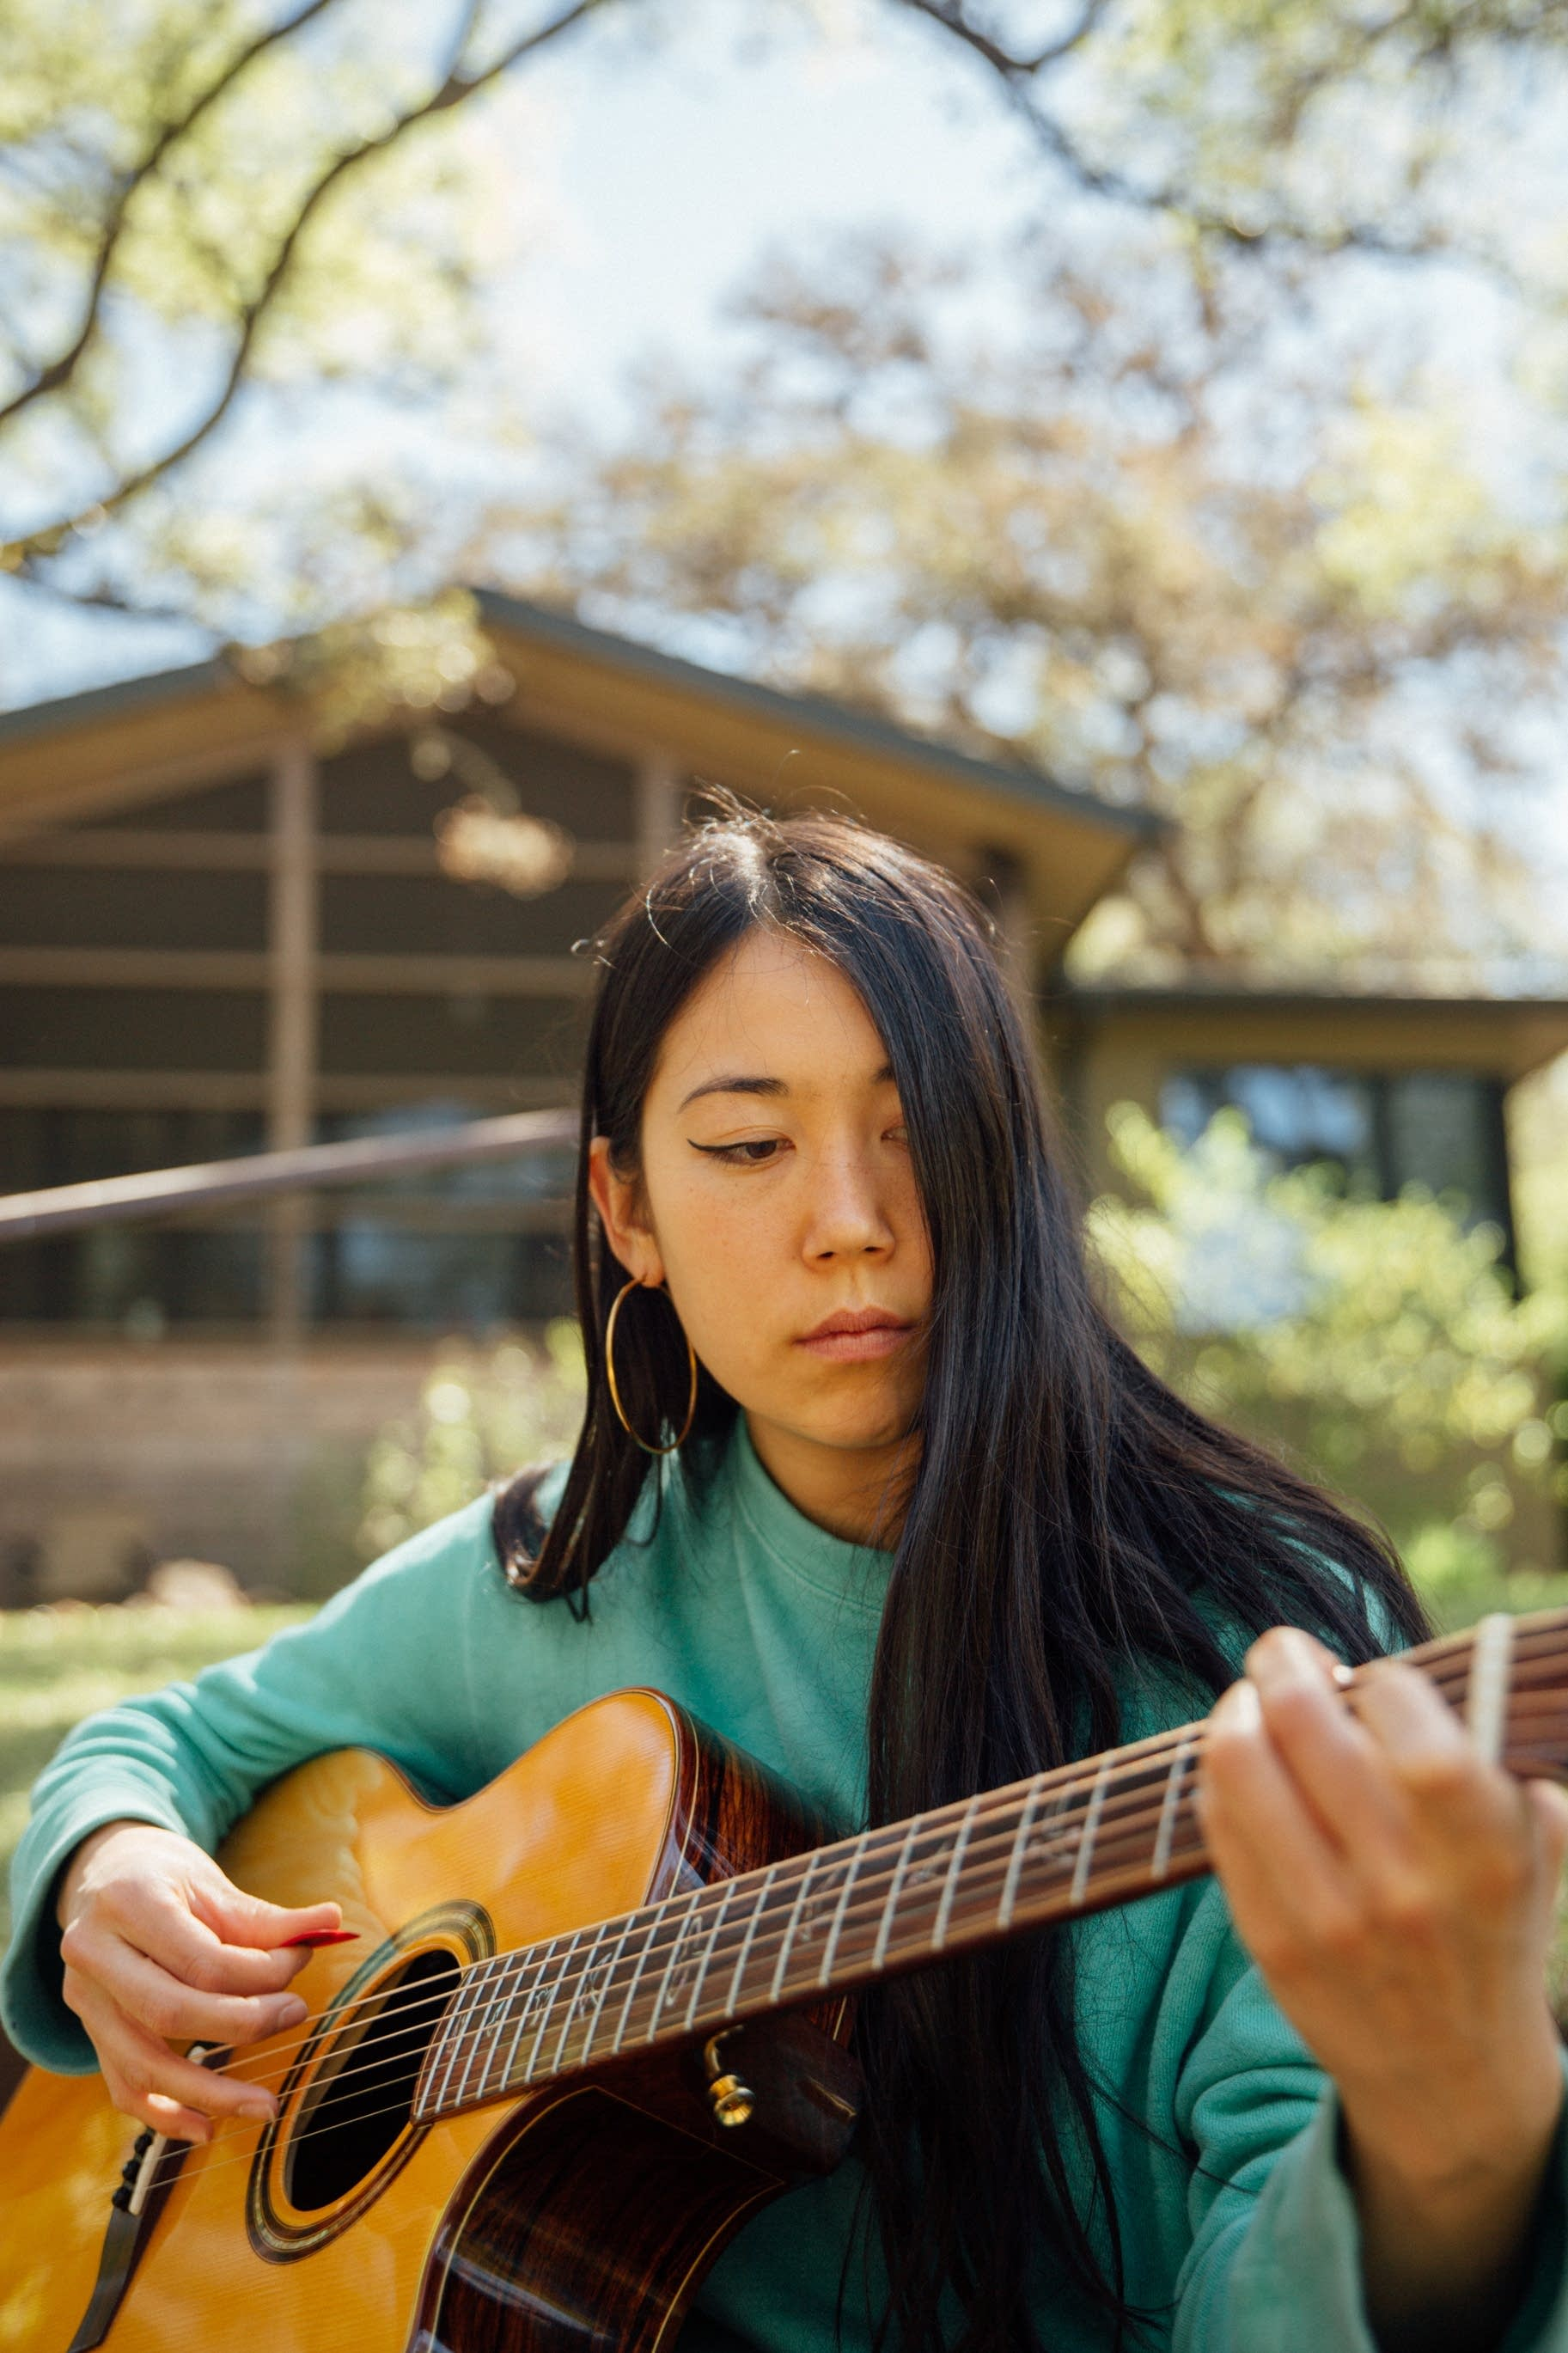 Sasami performs at SXSW 2019